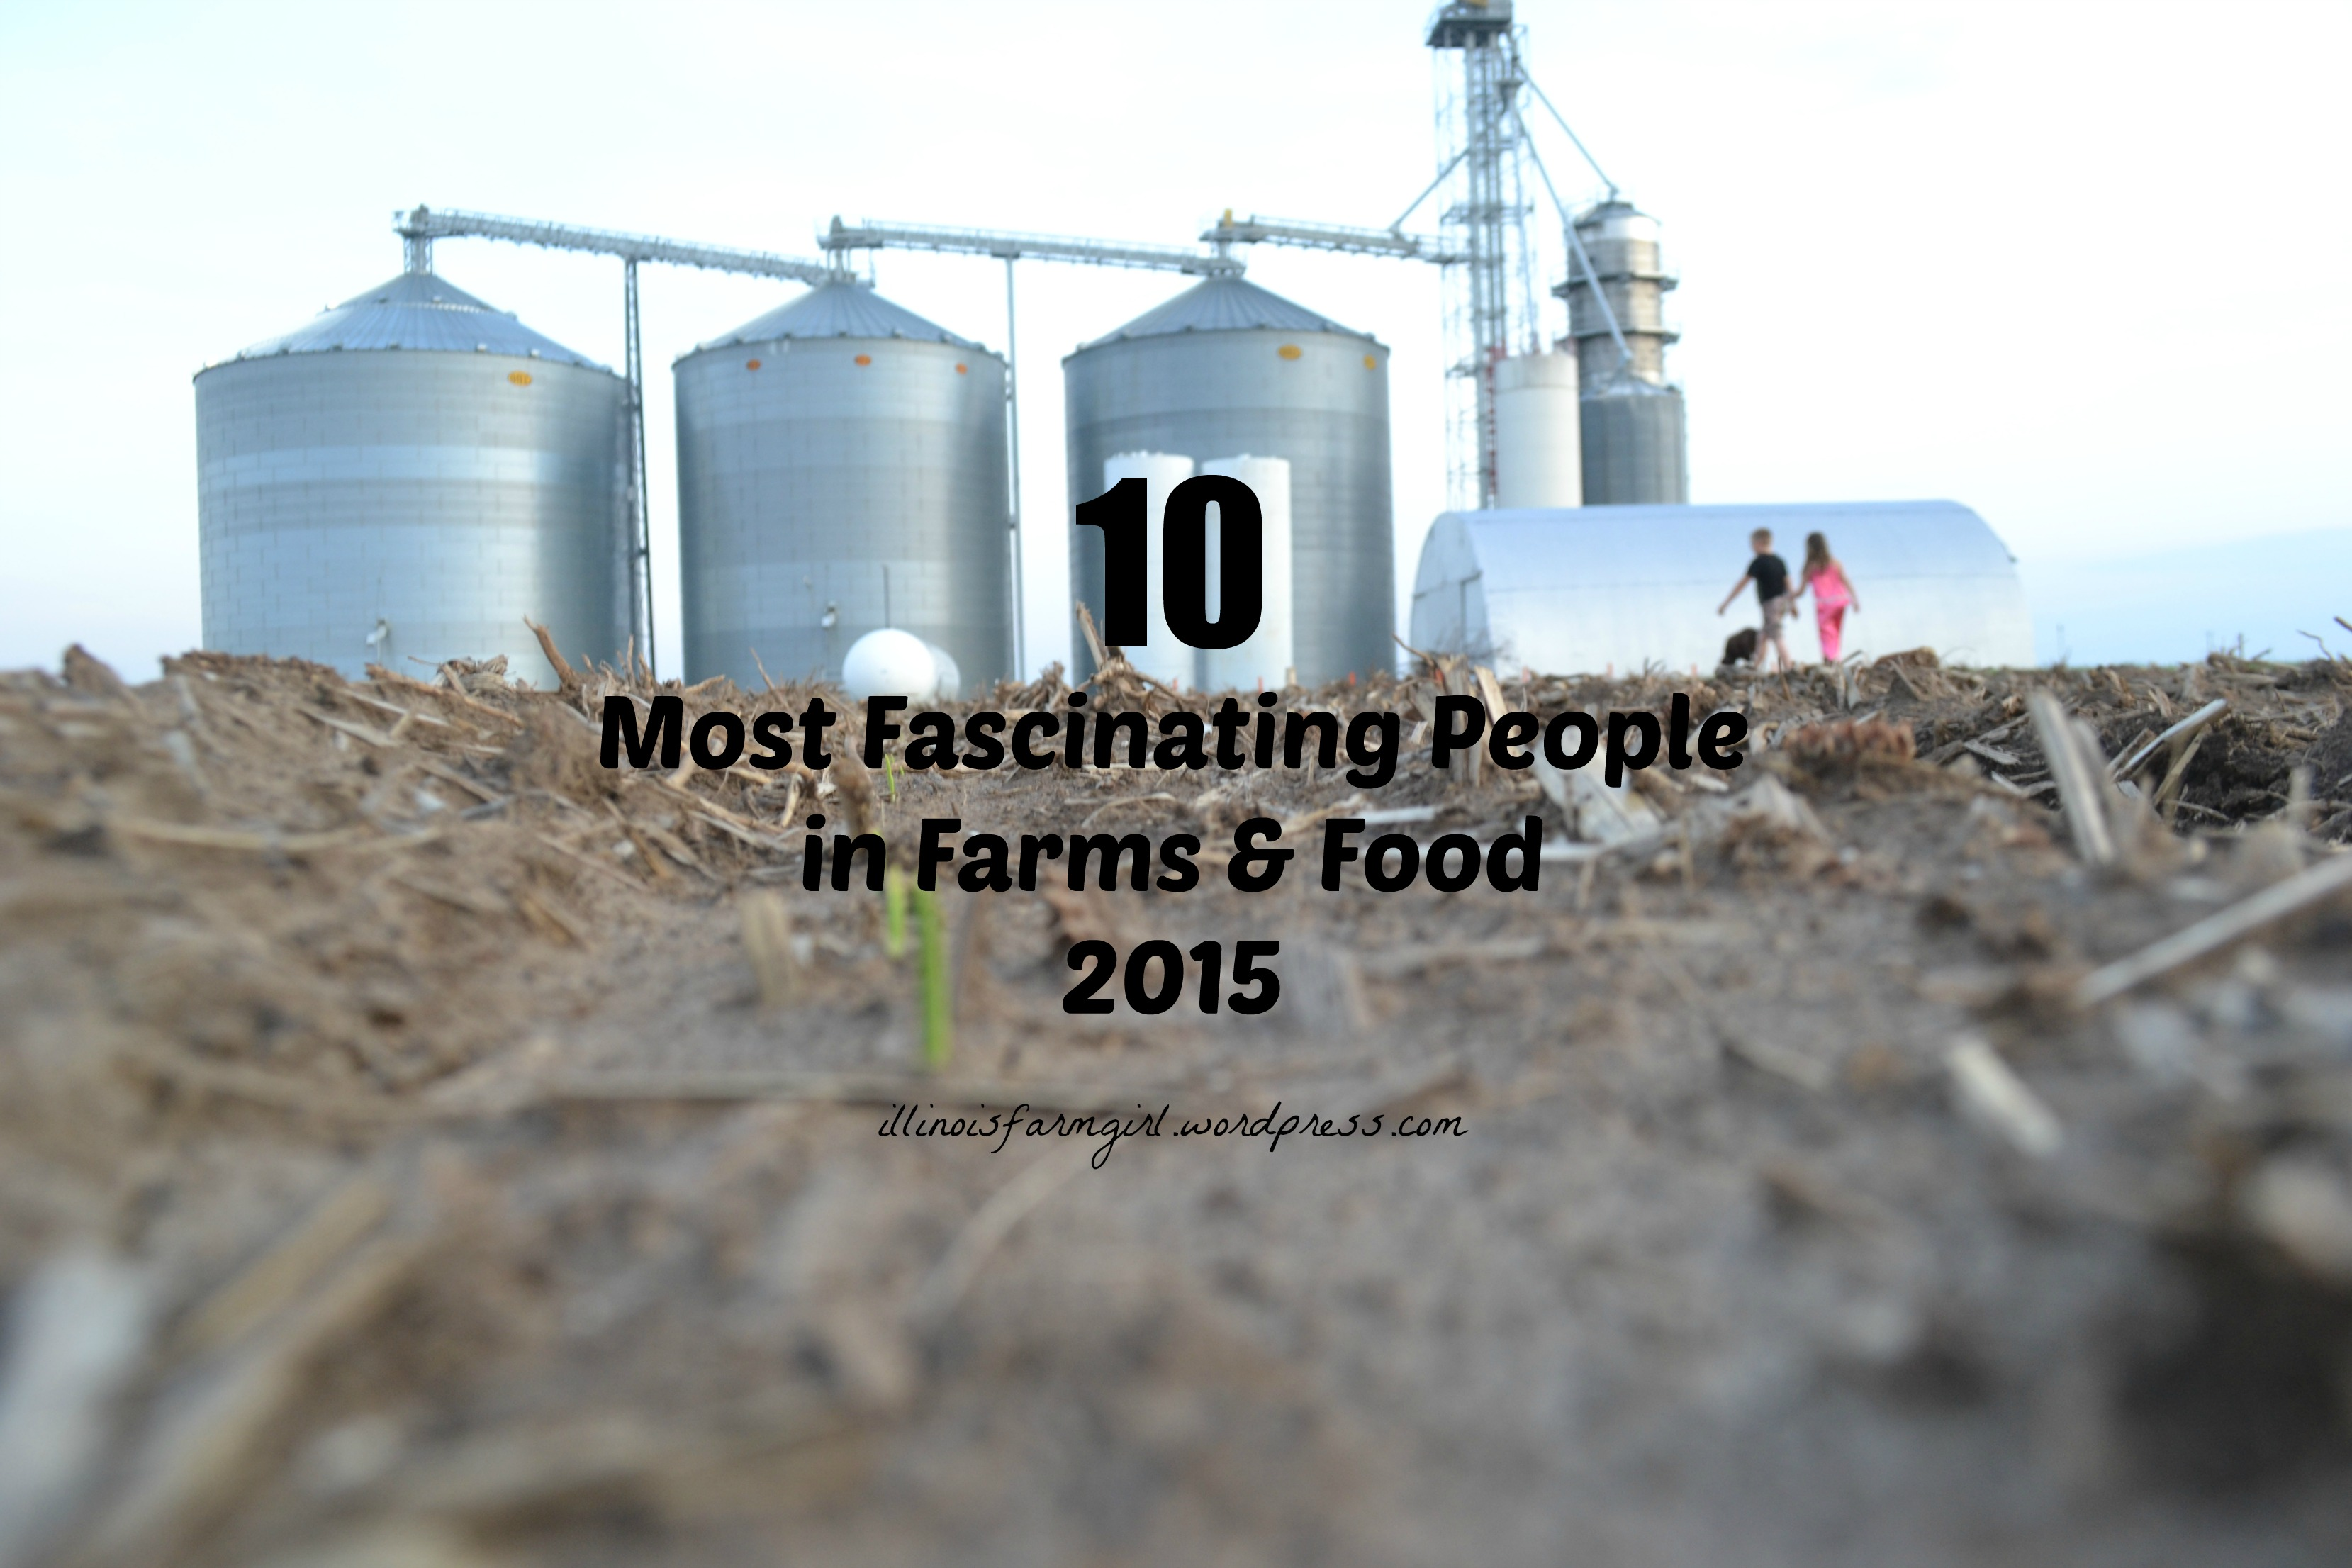 2015 Fascinating People Graphic 2